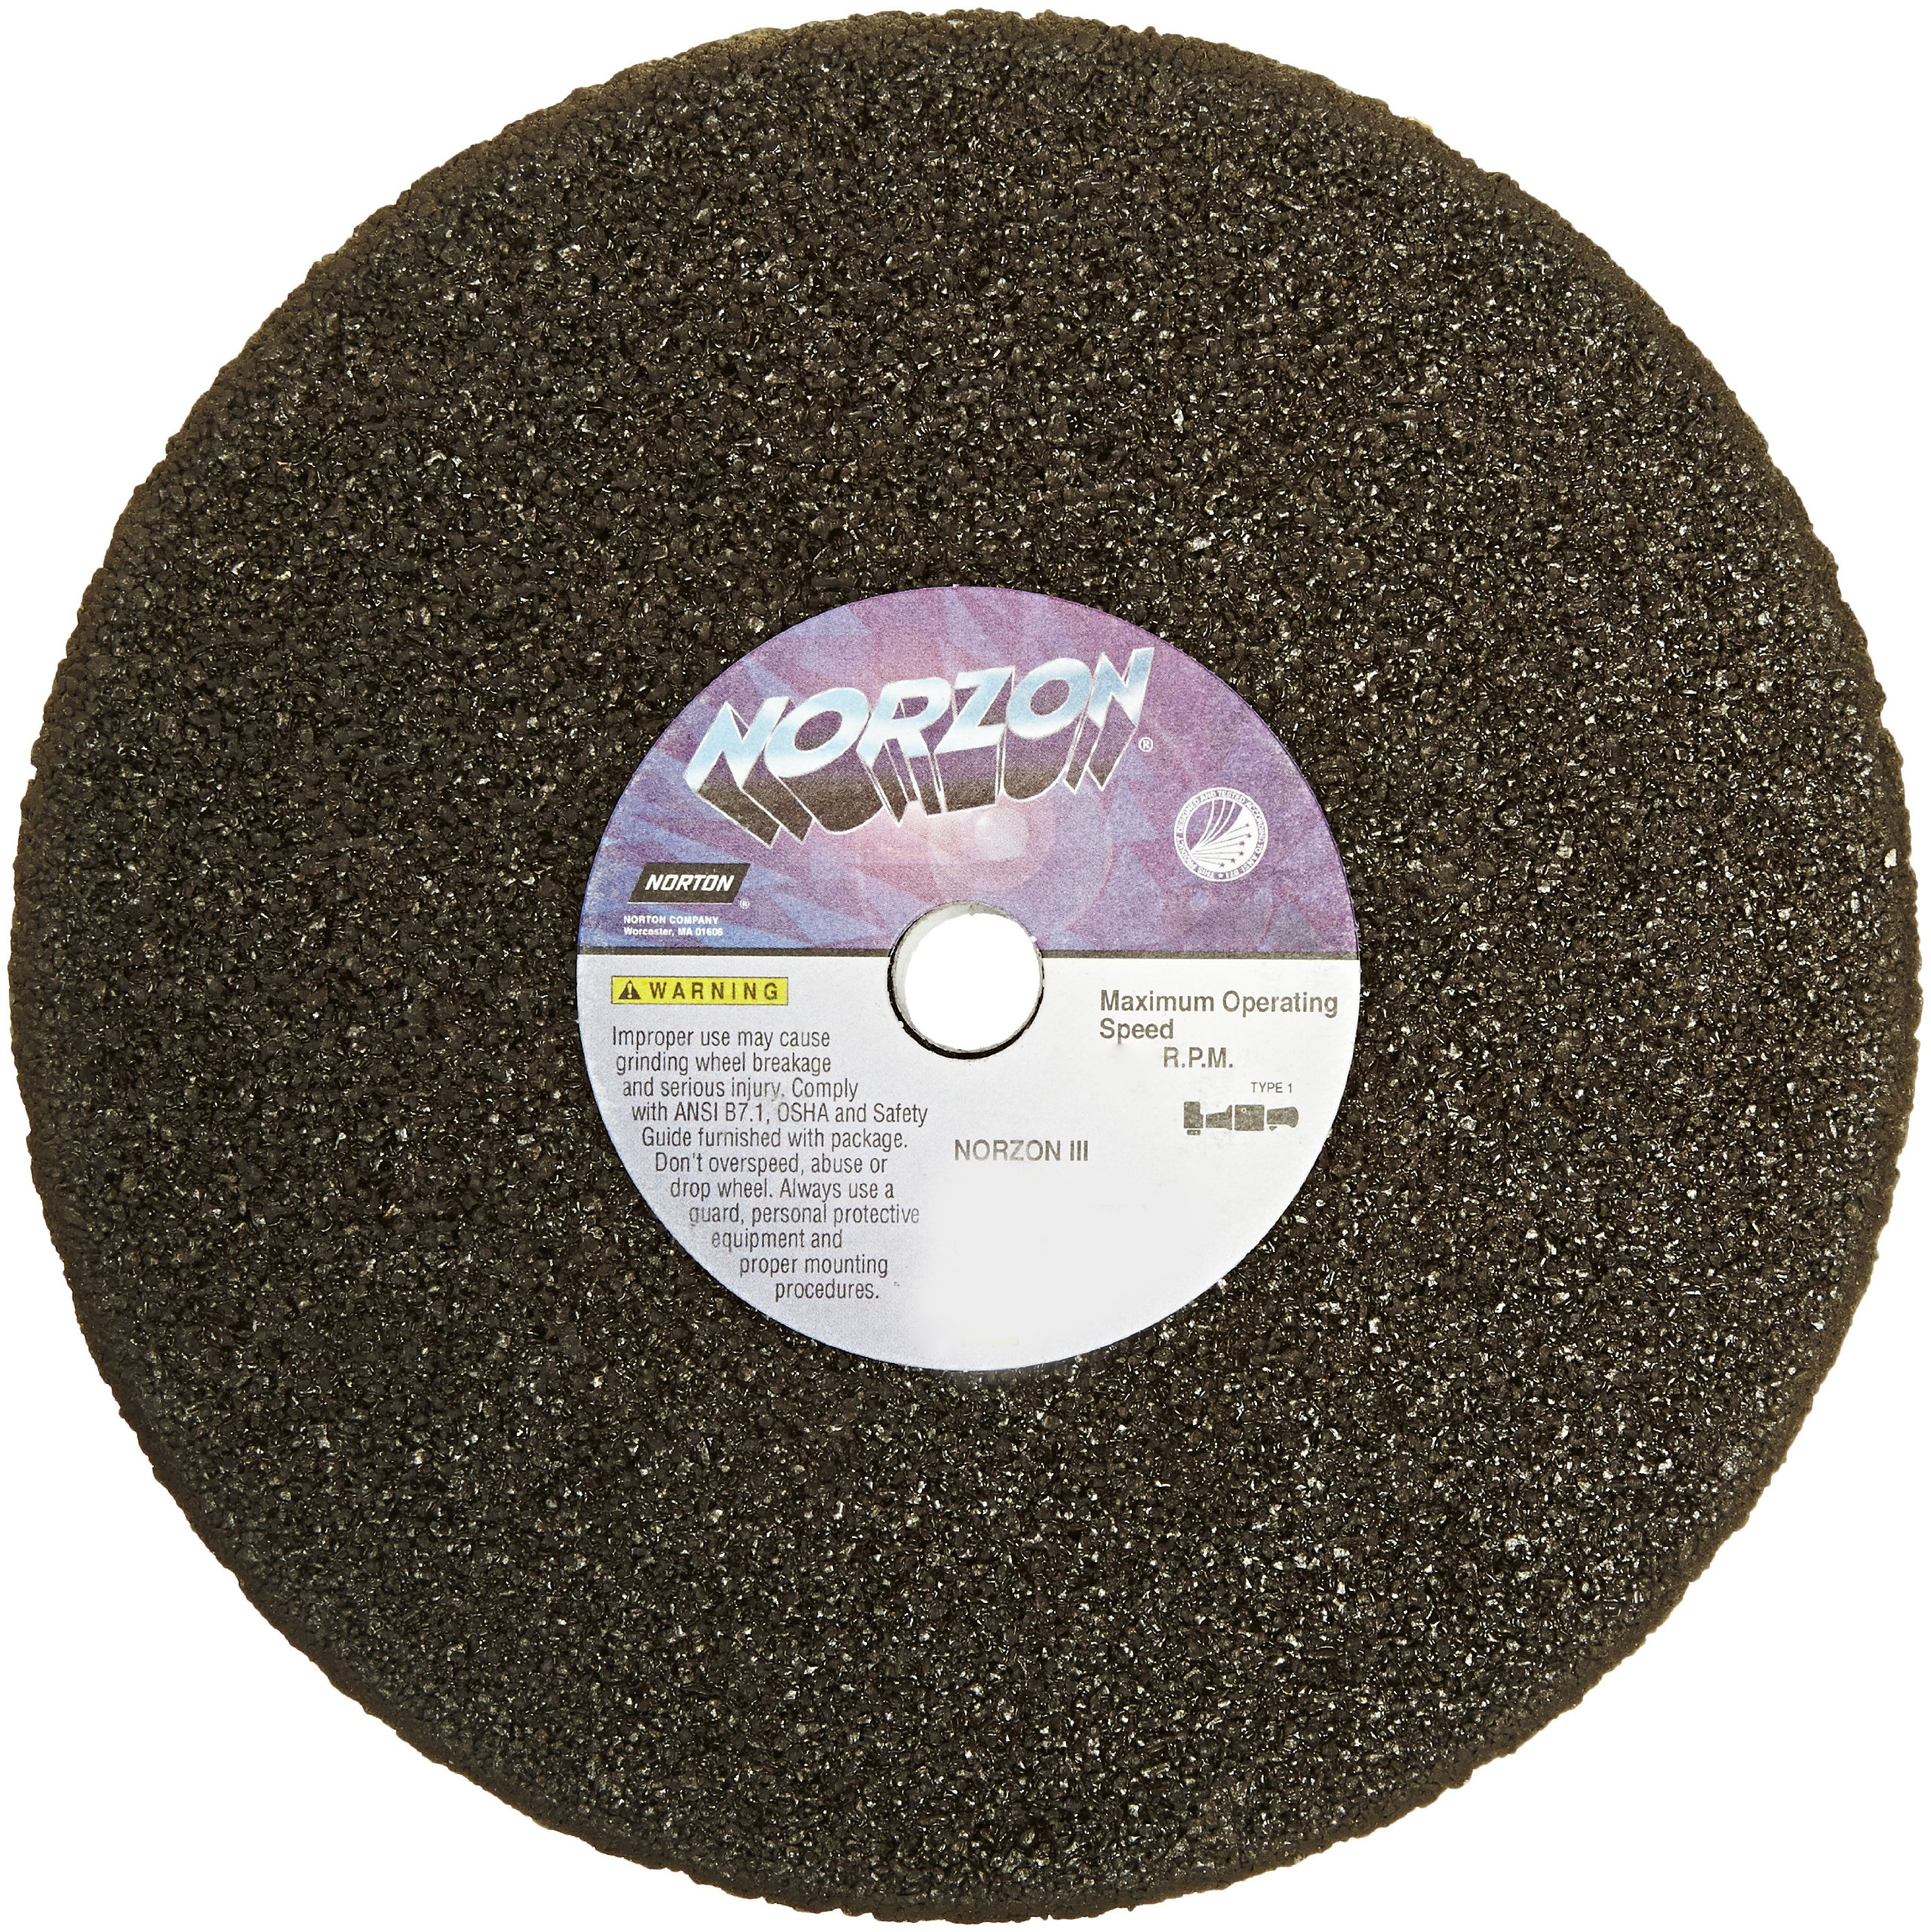 Norton NorZon III Portable Snagging Abrasive Wheel, Type 01 Straight, Zirconia Alumina, 5/8'' Arbor, 8'' Diameter, 1'' Thickness (Pack of 5) by Norton Abrasives - St. Gobain